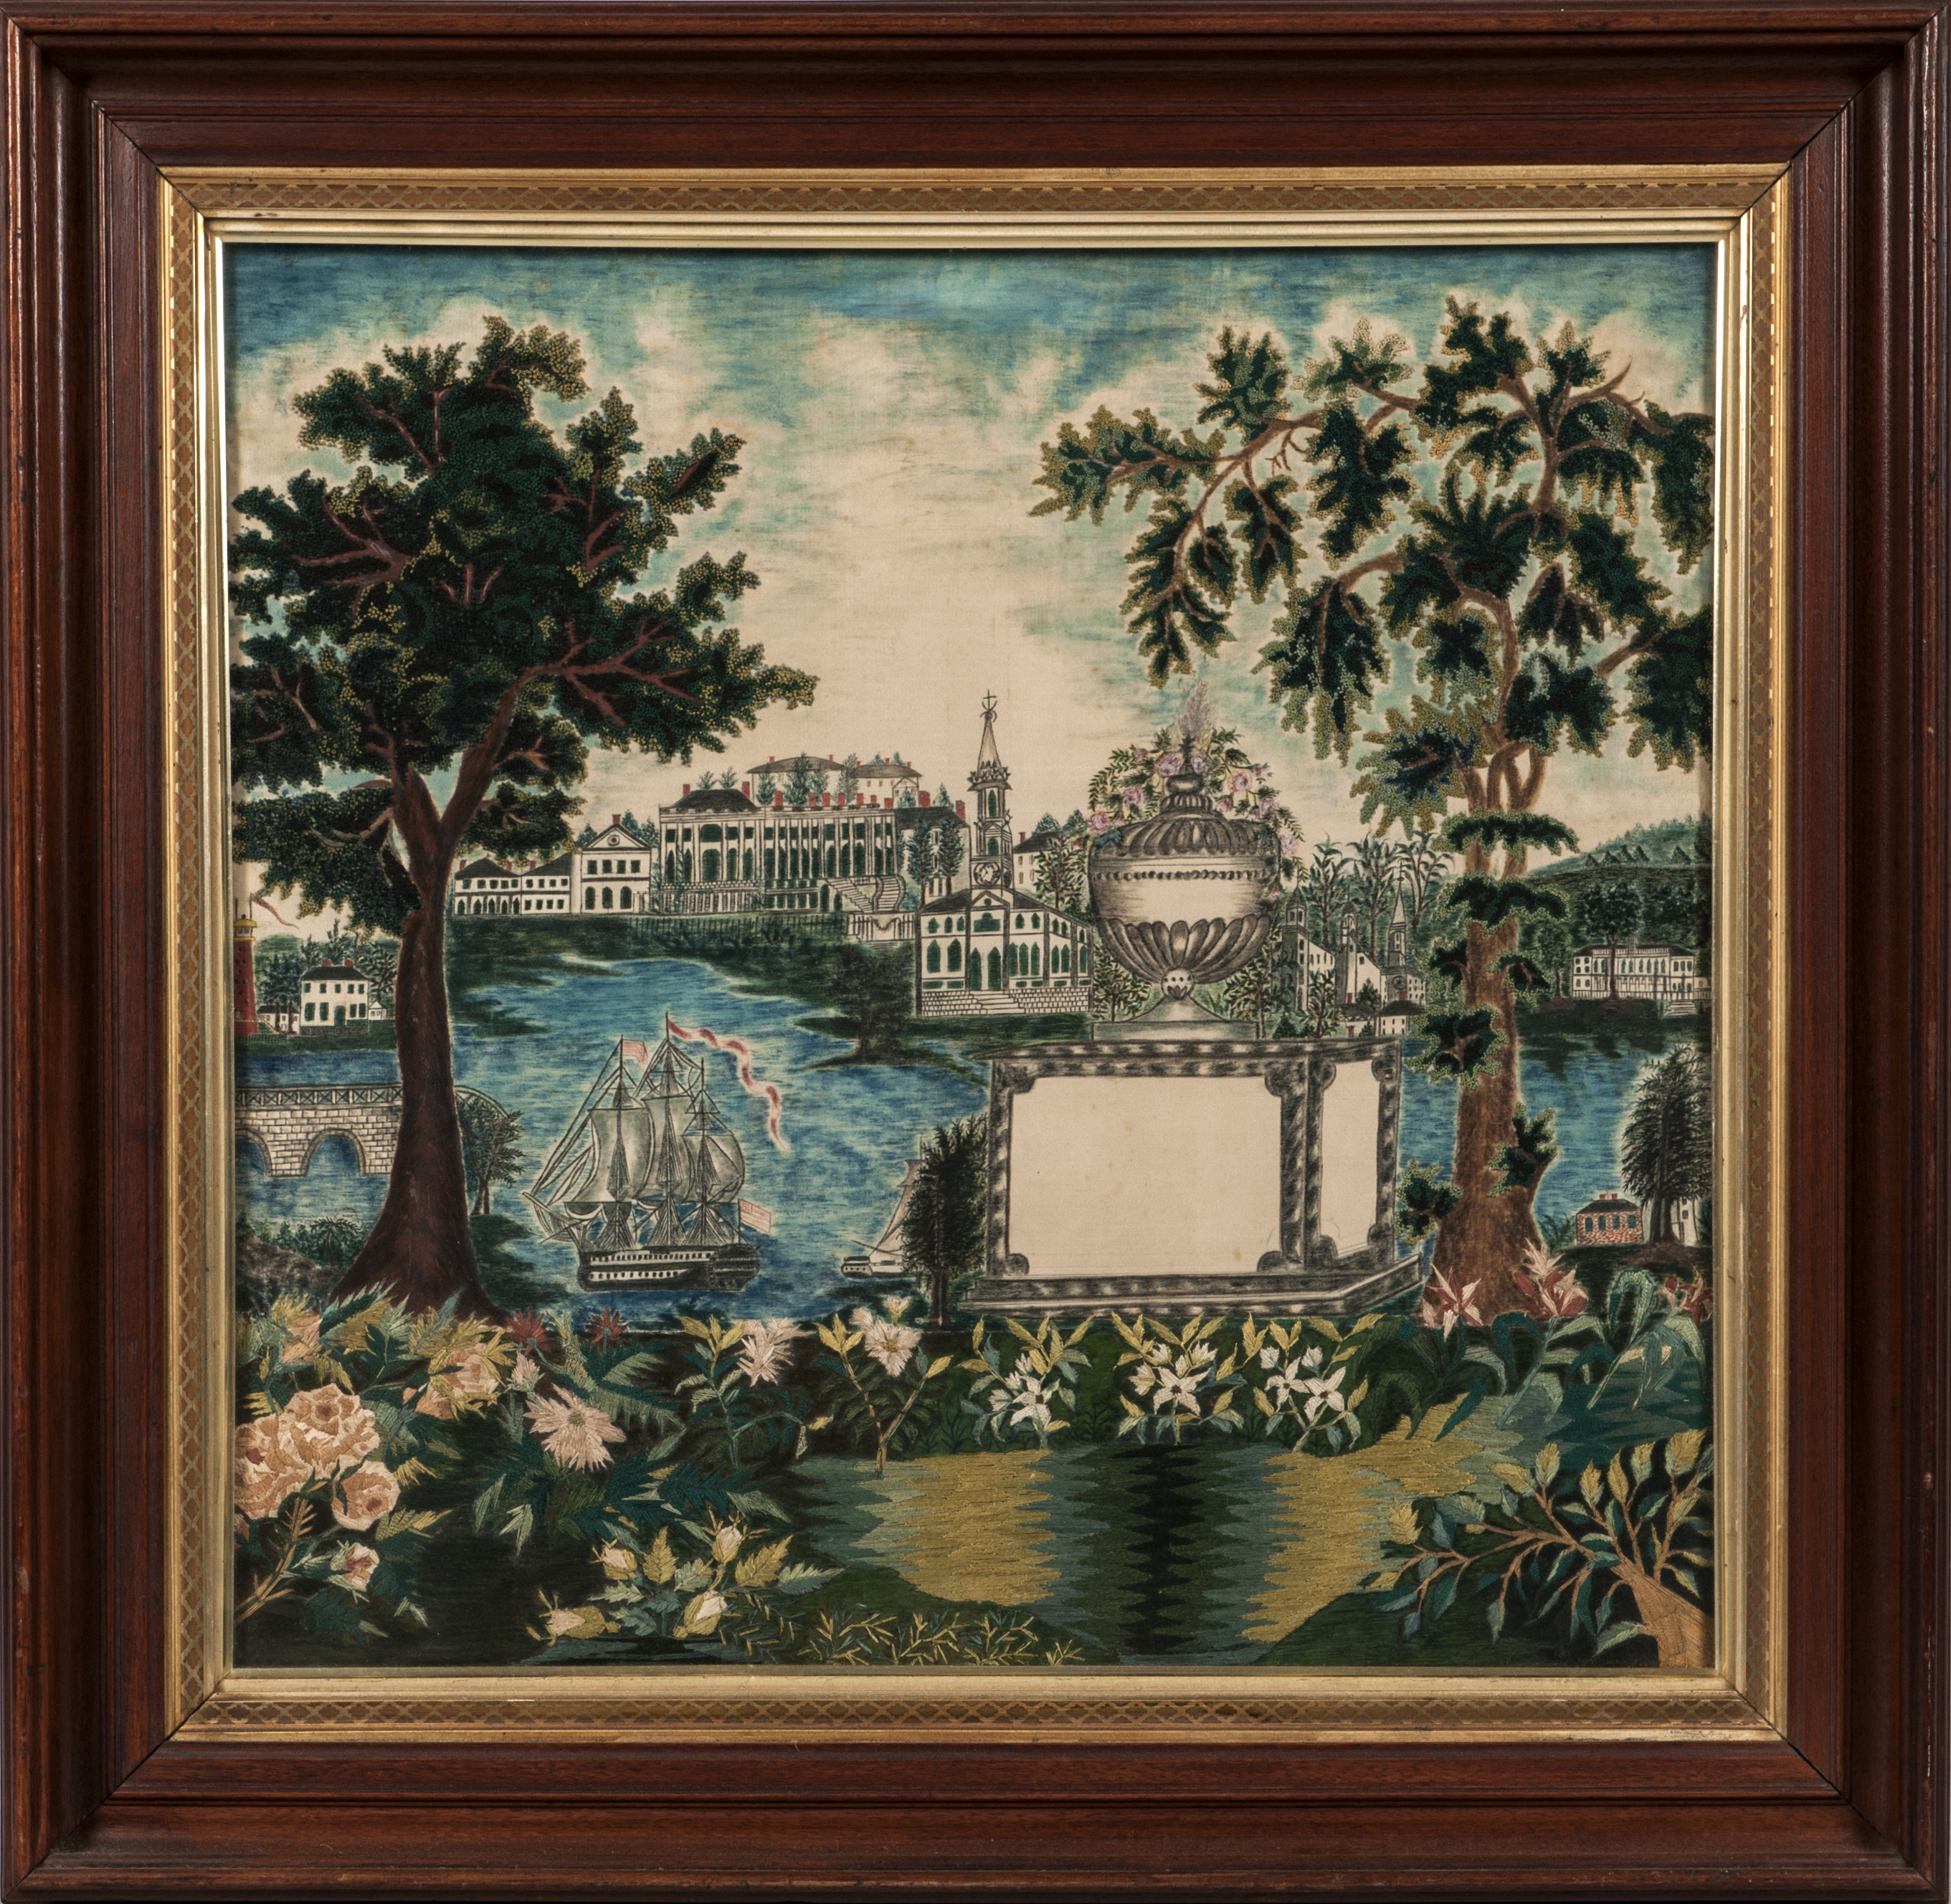 Painted and Embroidered Silk Mournig Picture, Anonymous, ME, circa. 1830 (Estimate: $3,000-5,000)